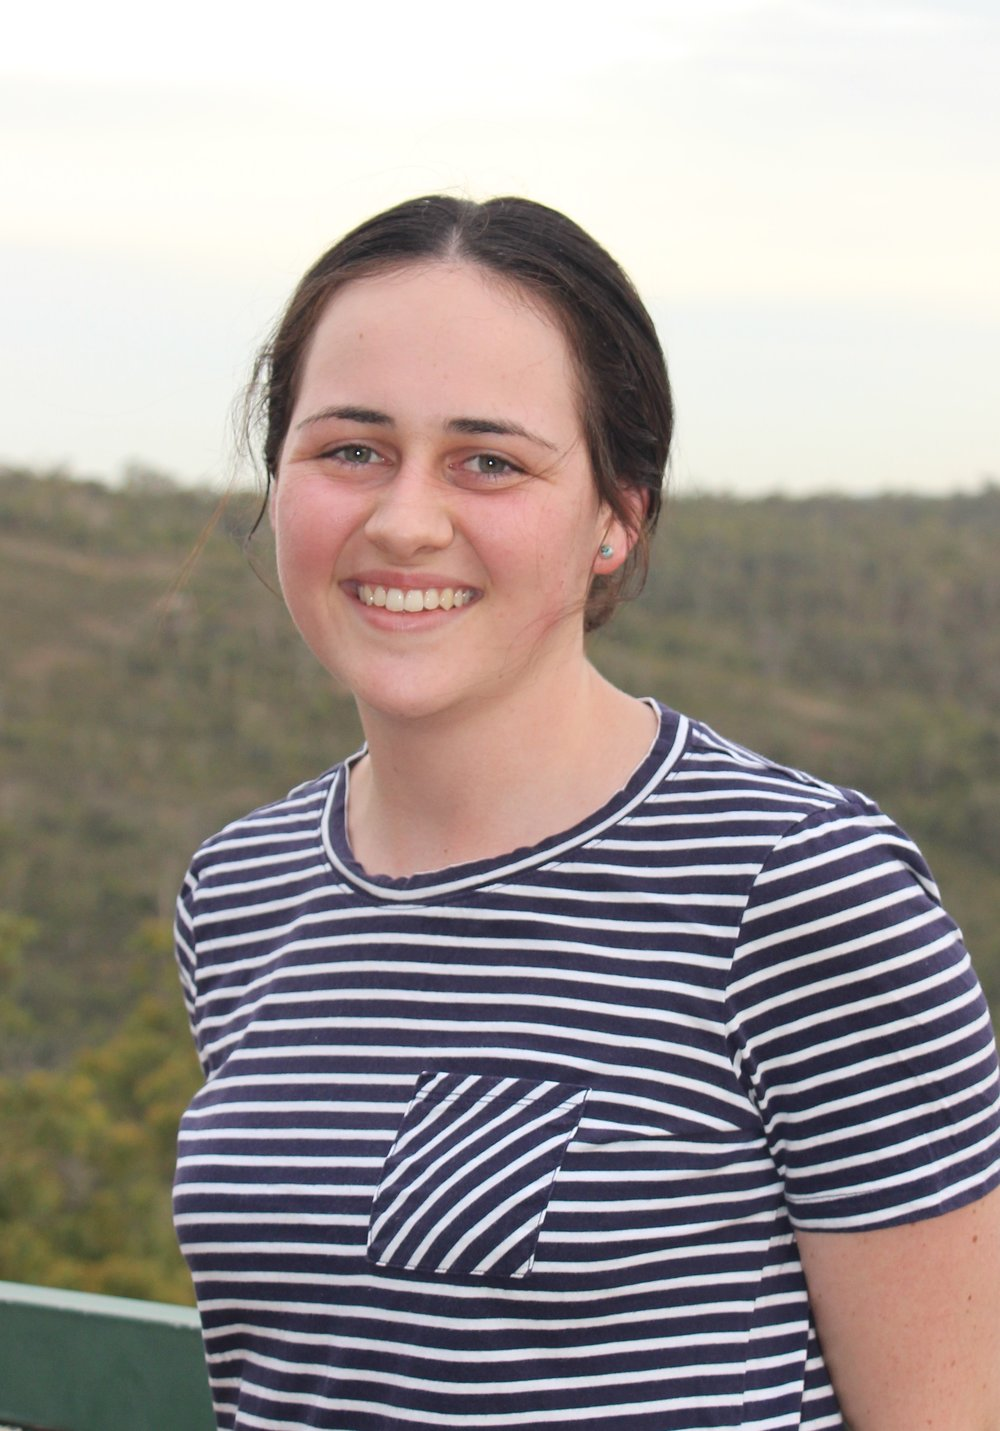 My name is Em and I'm in my second year of architecture at UWA. I'm originally from Geraldton but now live in Perth and this will be my second year at College. I really enjoy playing hockey and watching the bachelor with friends, tea, chocolate and strawberries (you're always welcome to join and drag Toni along – she loves it!).